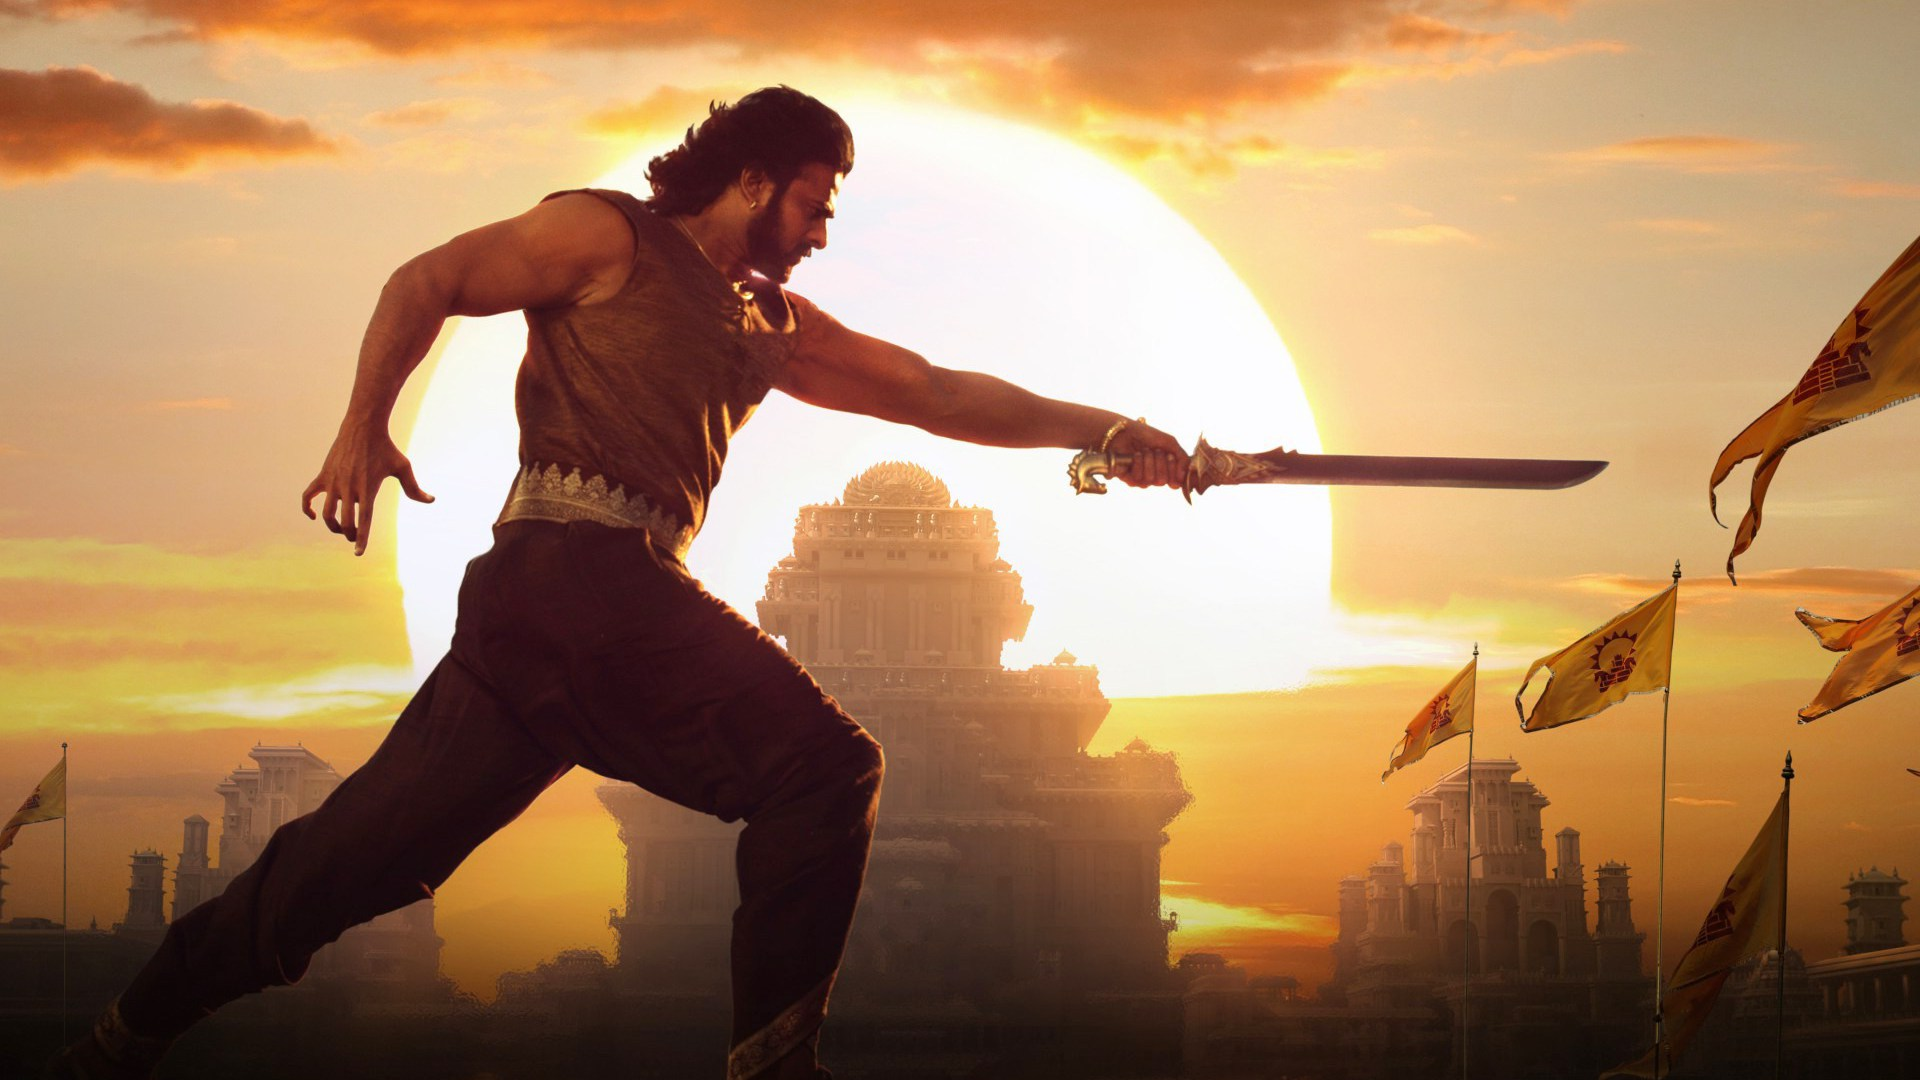 Baahubali 2 The Conclusion Hd Wallpaper Background Image